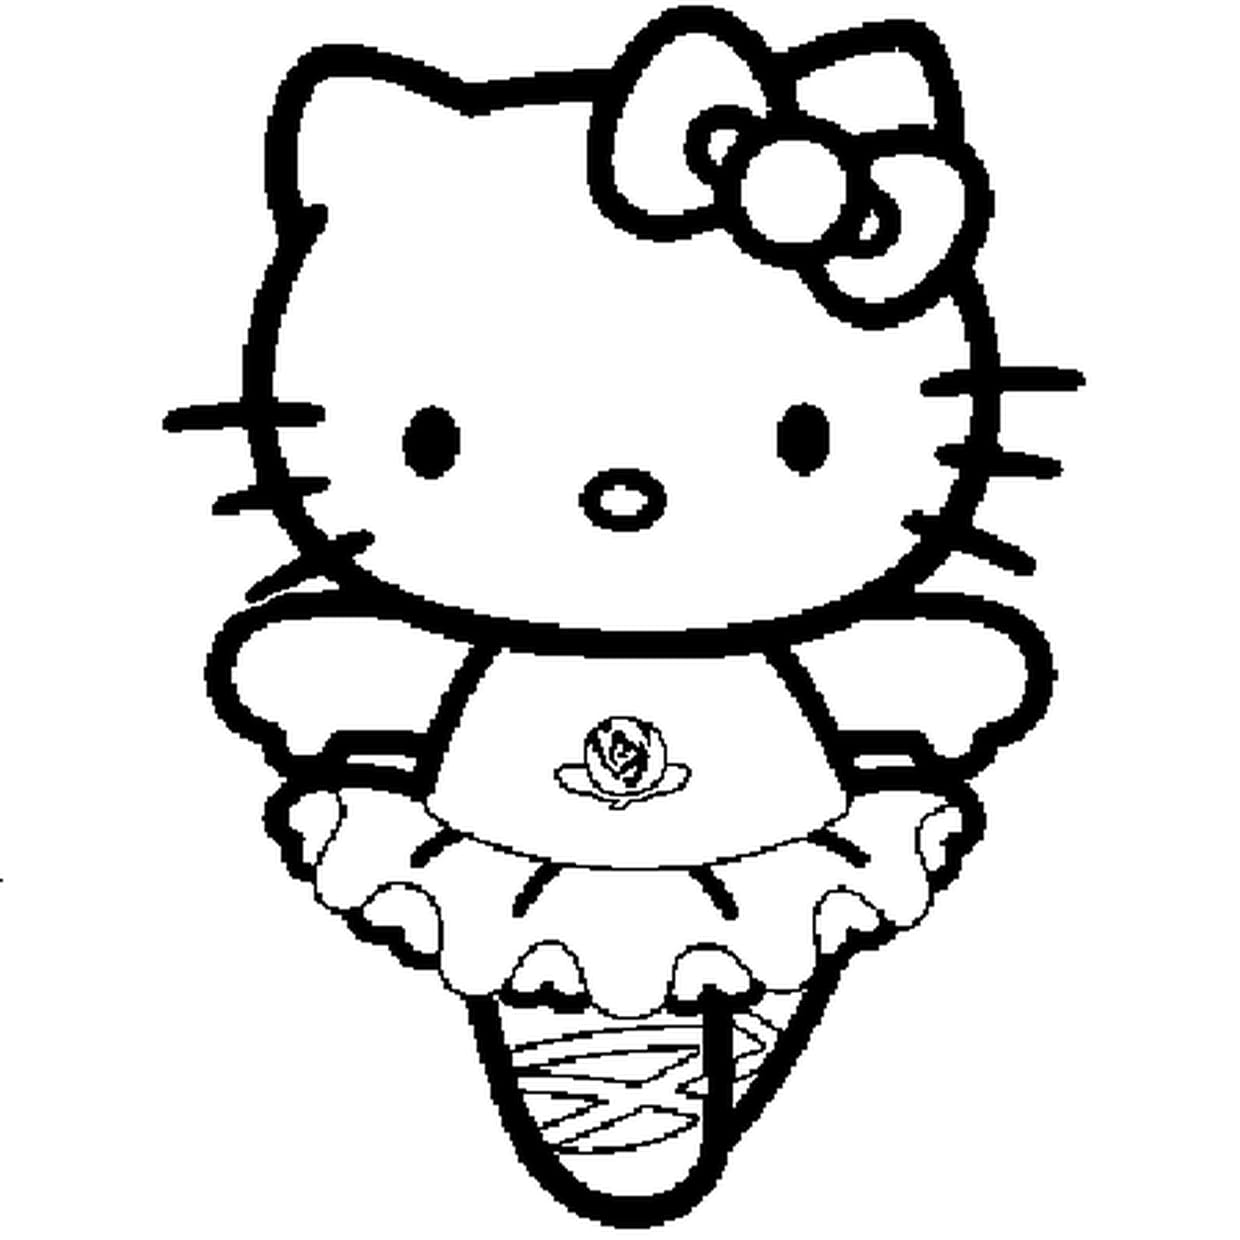 Charmant Coloriage Hello Ketty 97 sur Coloriage Pages by Coloriage Hello Ketty